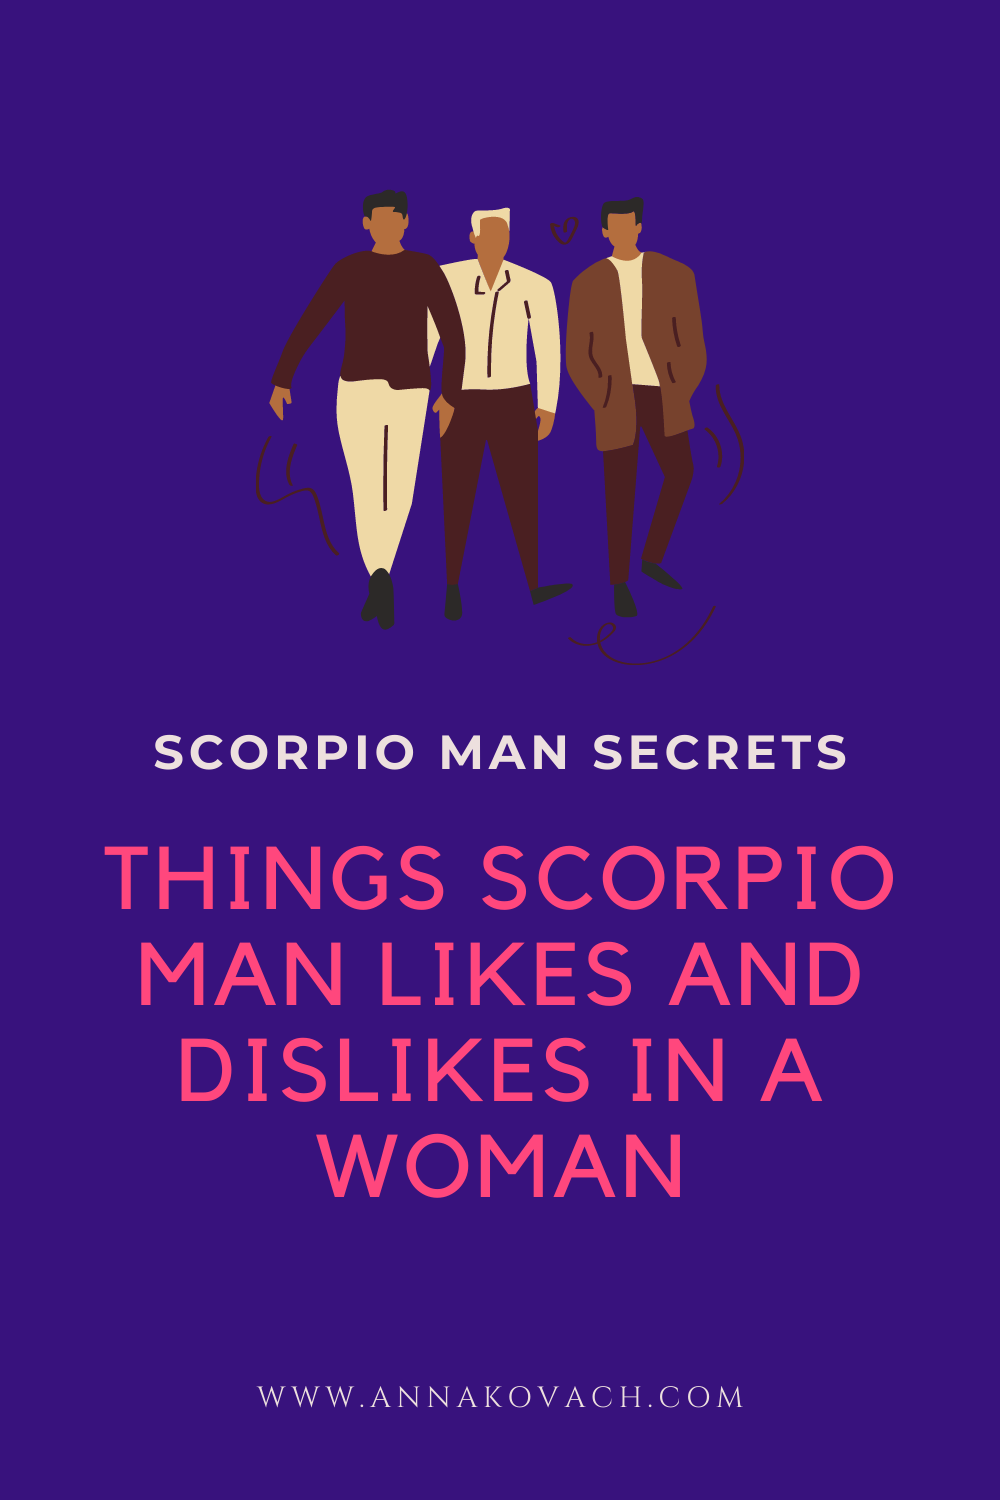 5 Scorpio Man Likes And Dislikes: What He Loves and Hates